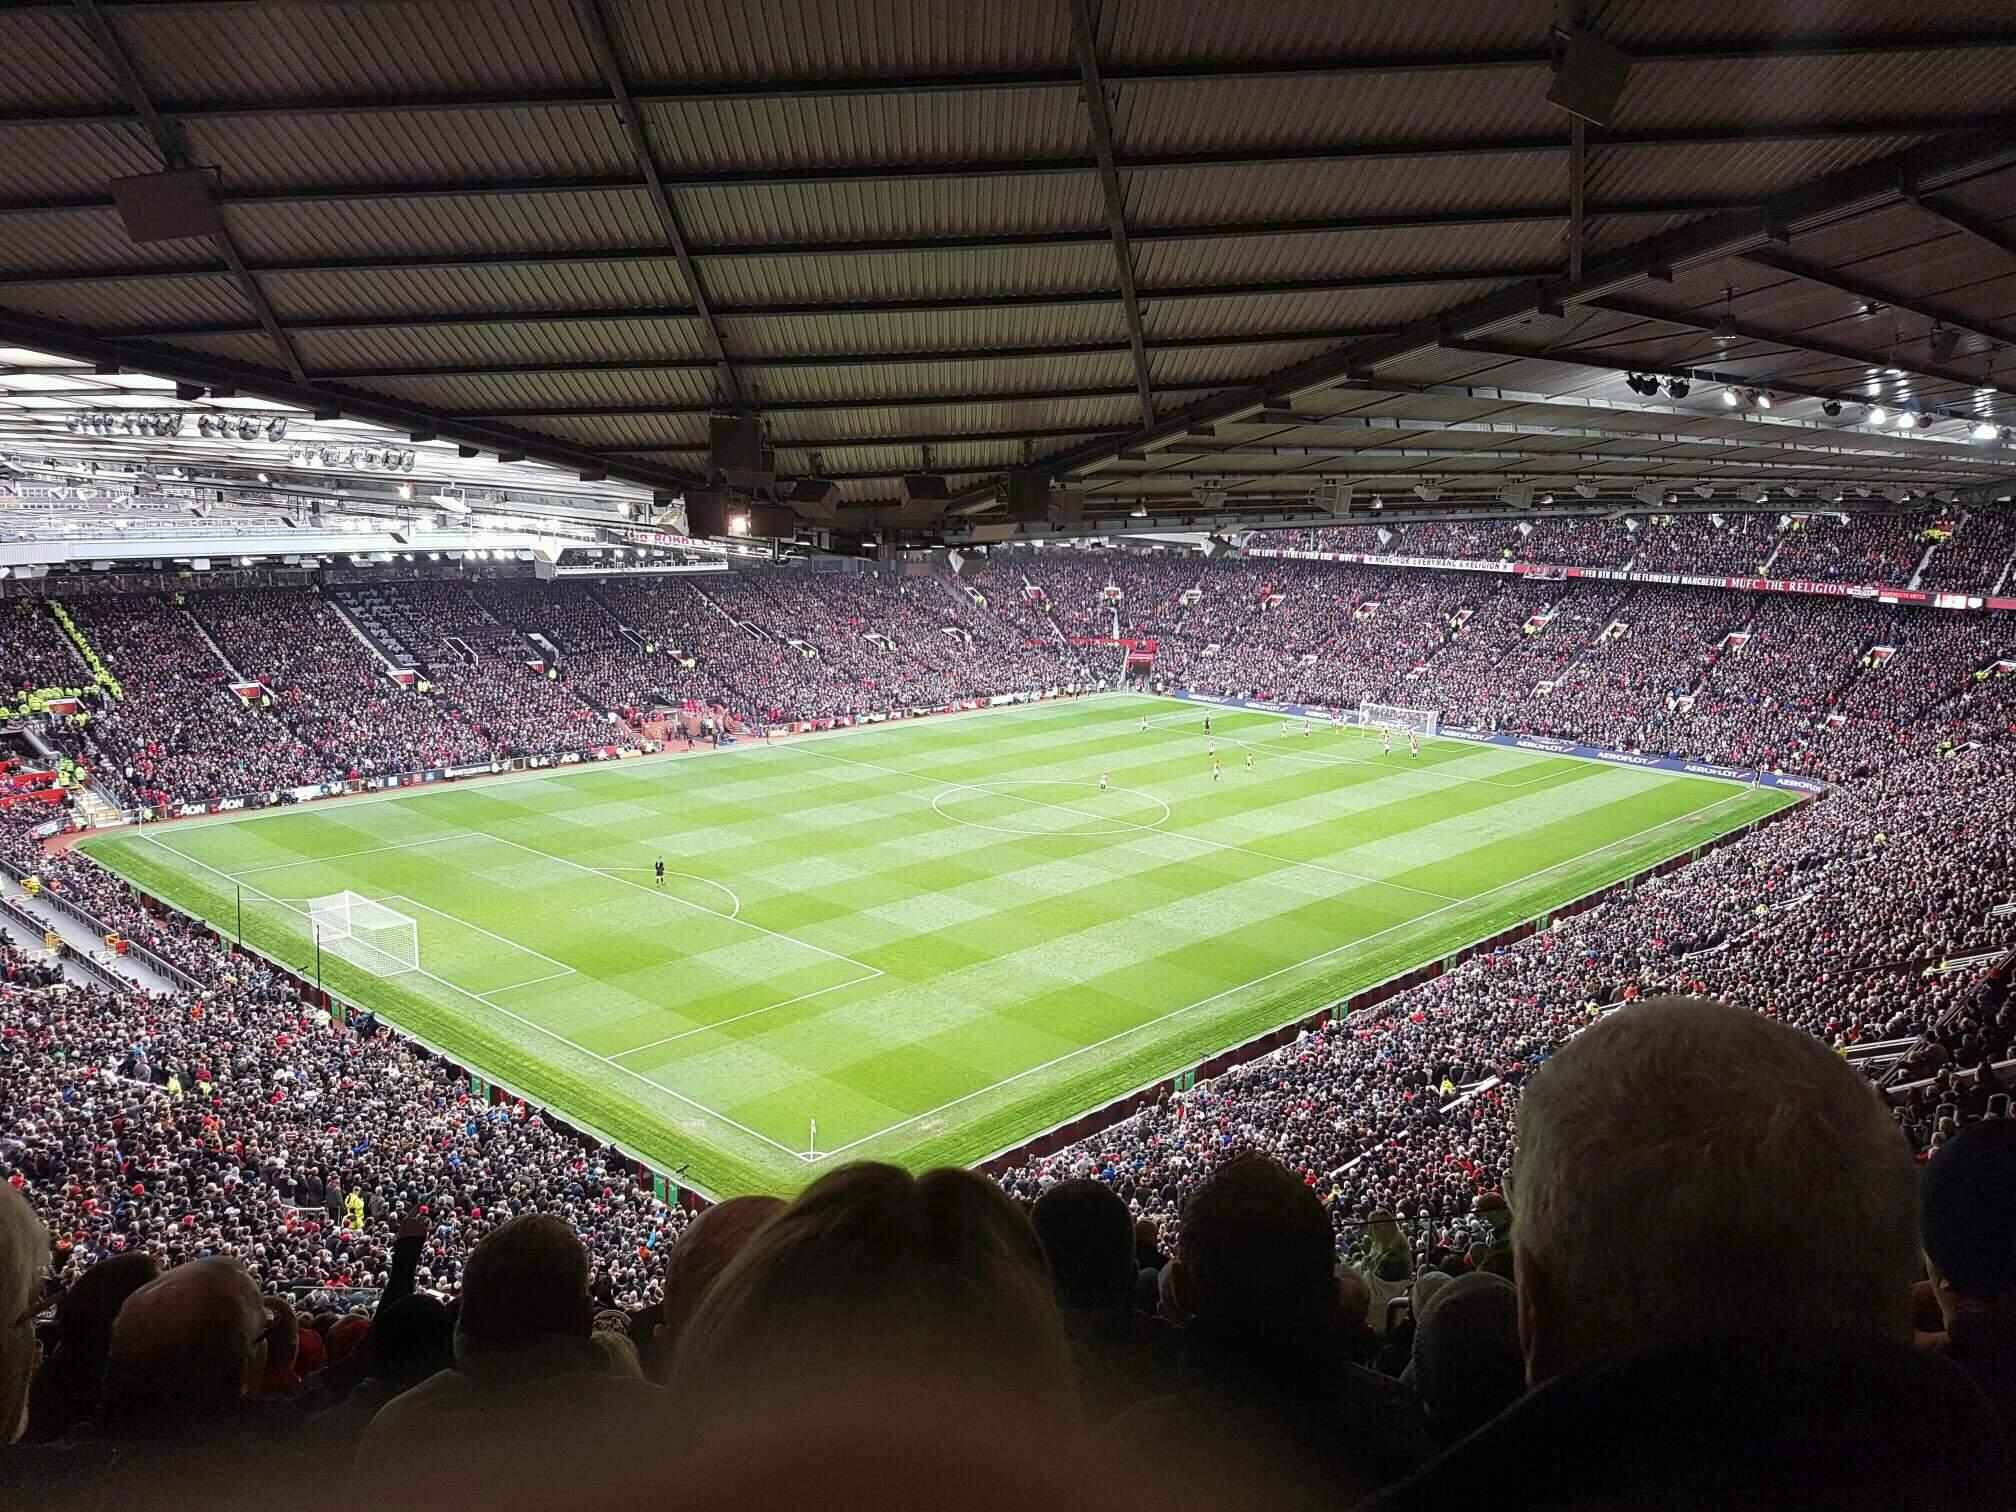 Old Trafford Section NE3421 Row 26 Seat 75